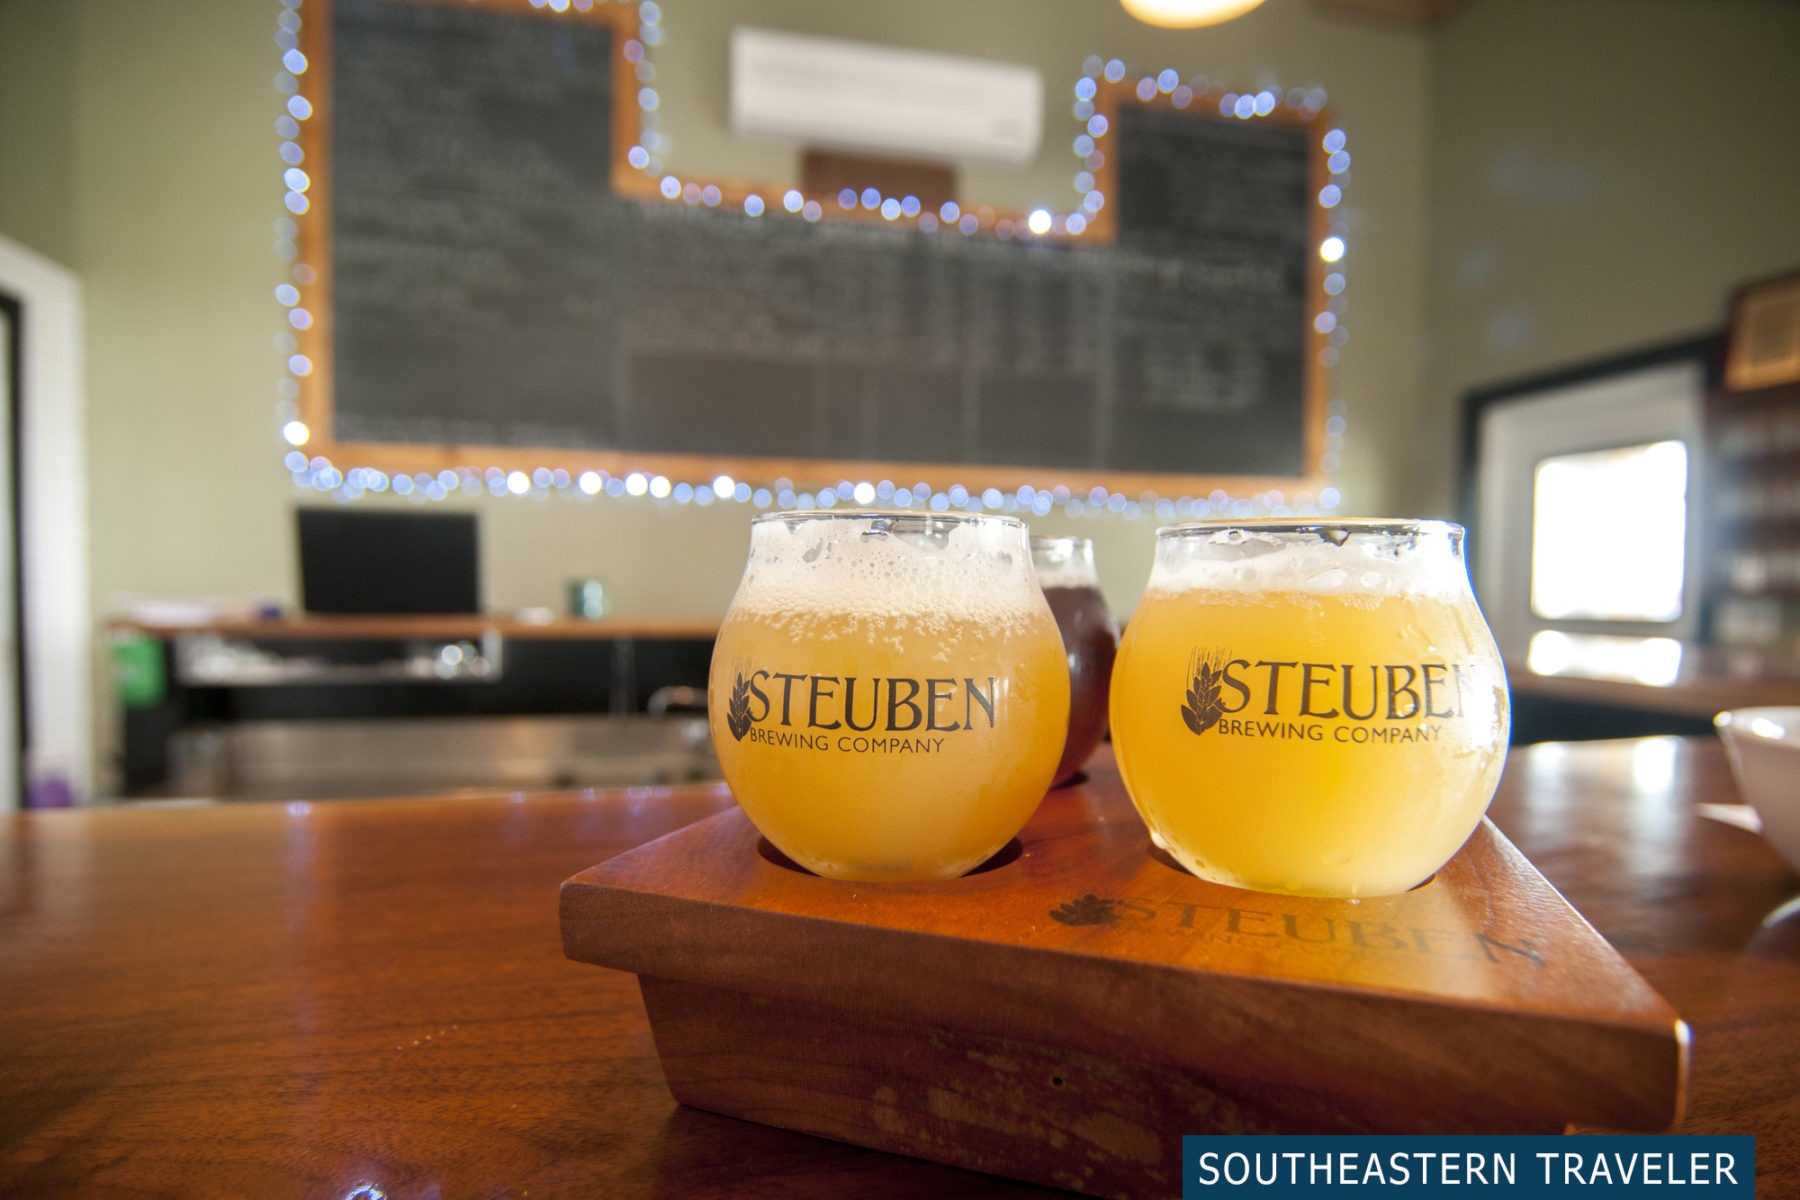 A flight of four craft beers from Steuben Brewing Company in Hammondsport, New York